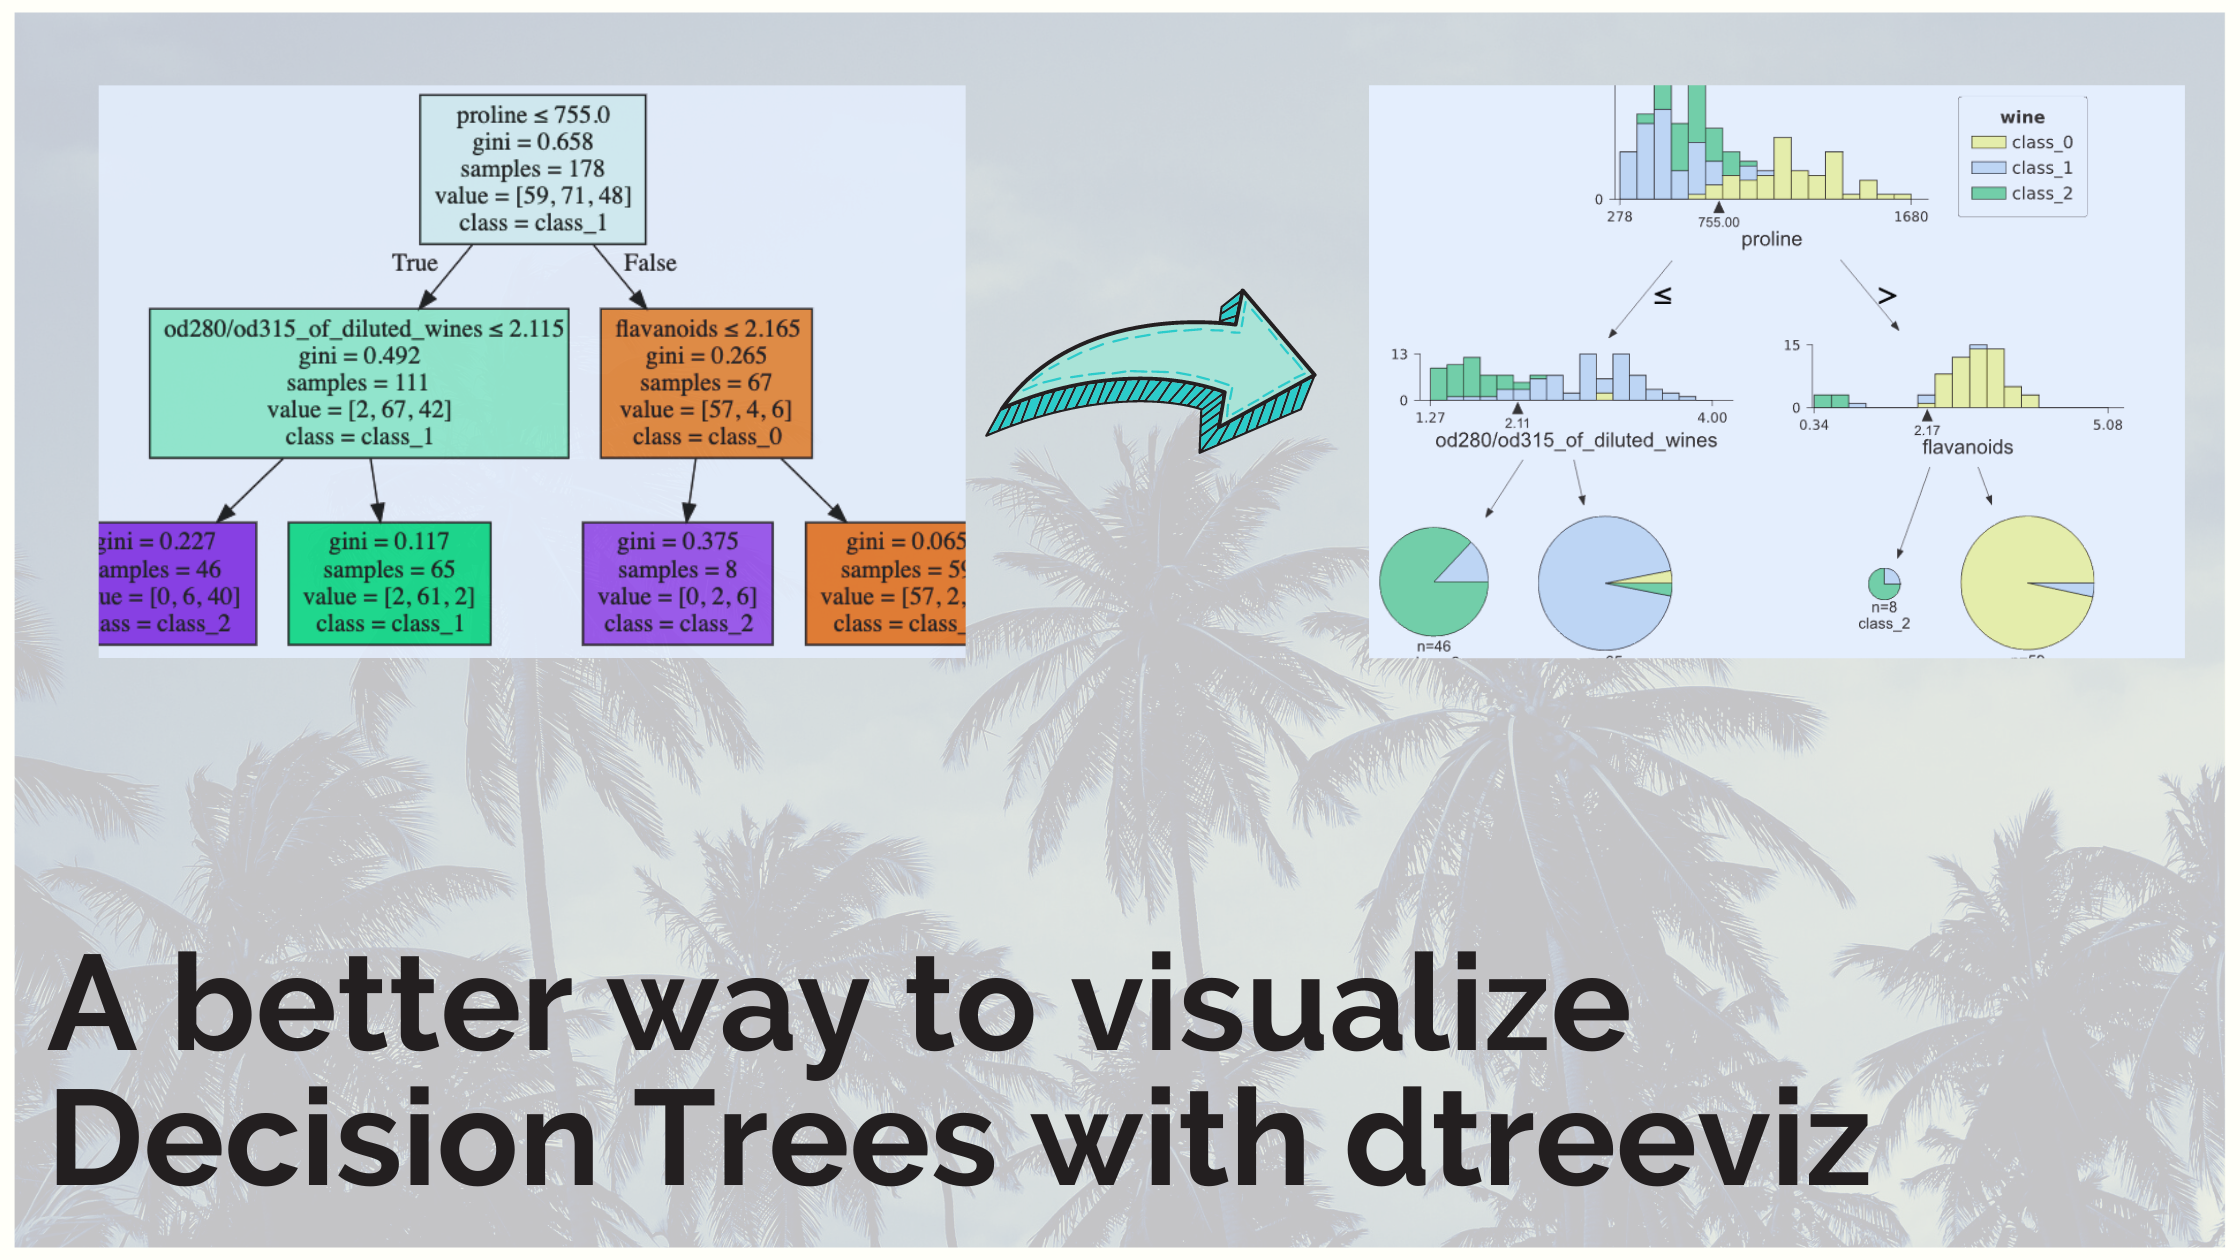 A better way to visualize Decision Trees with the dtreeviz library